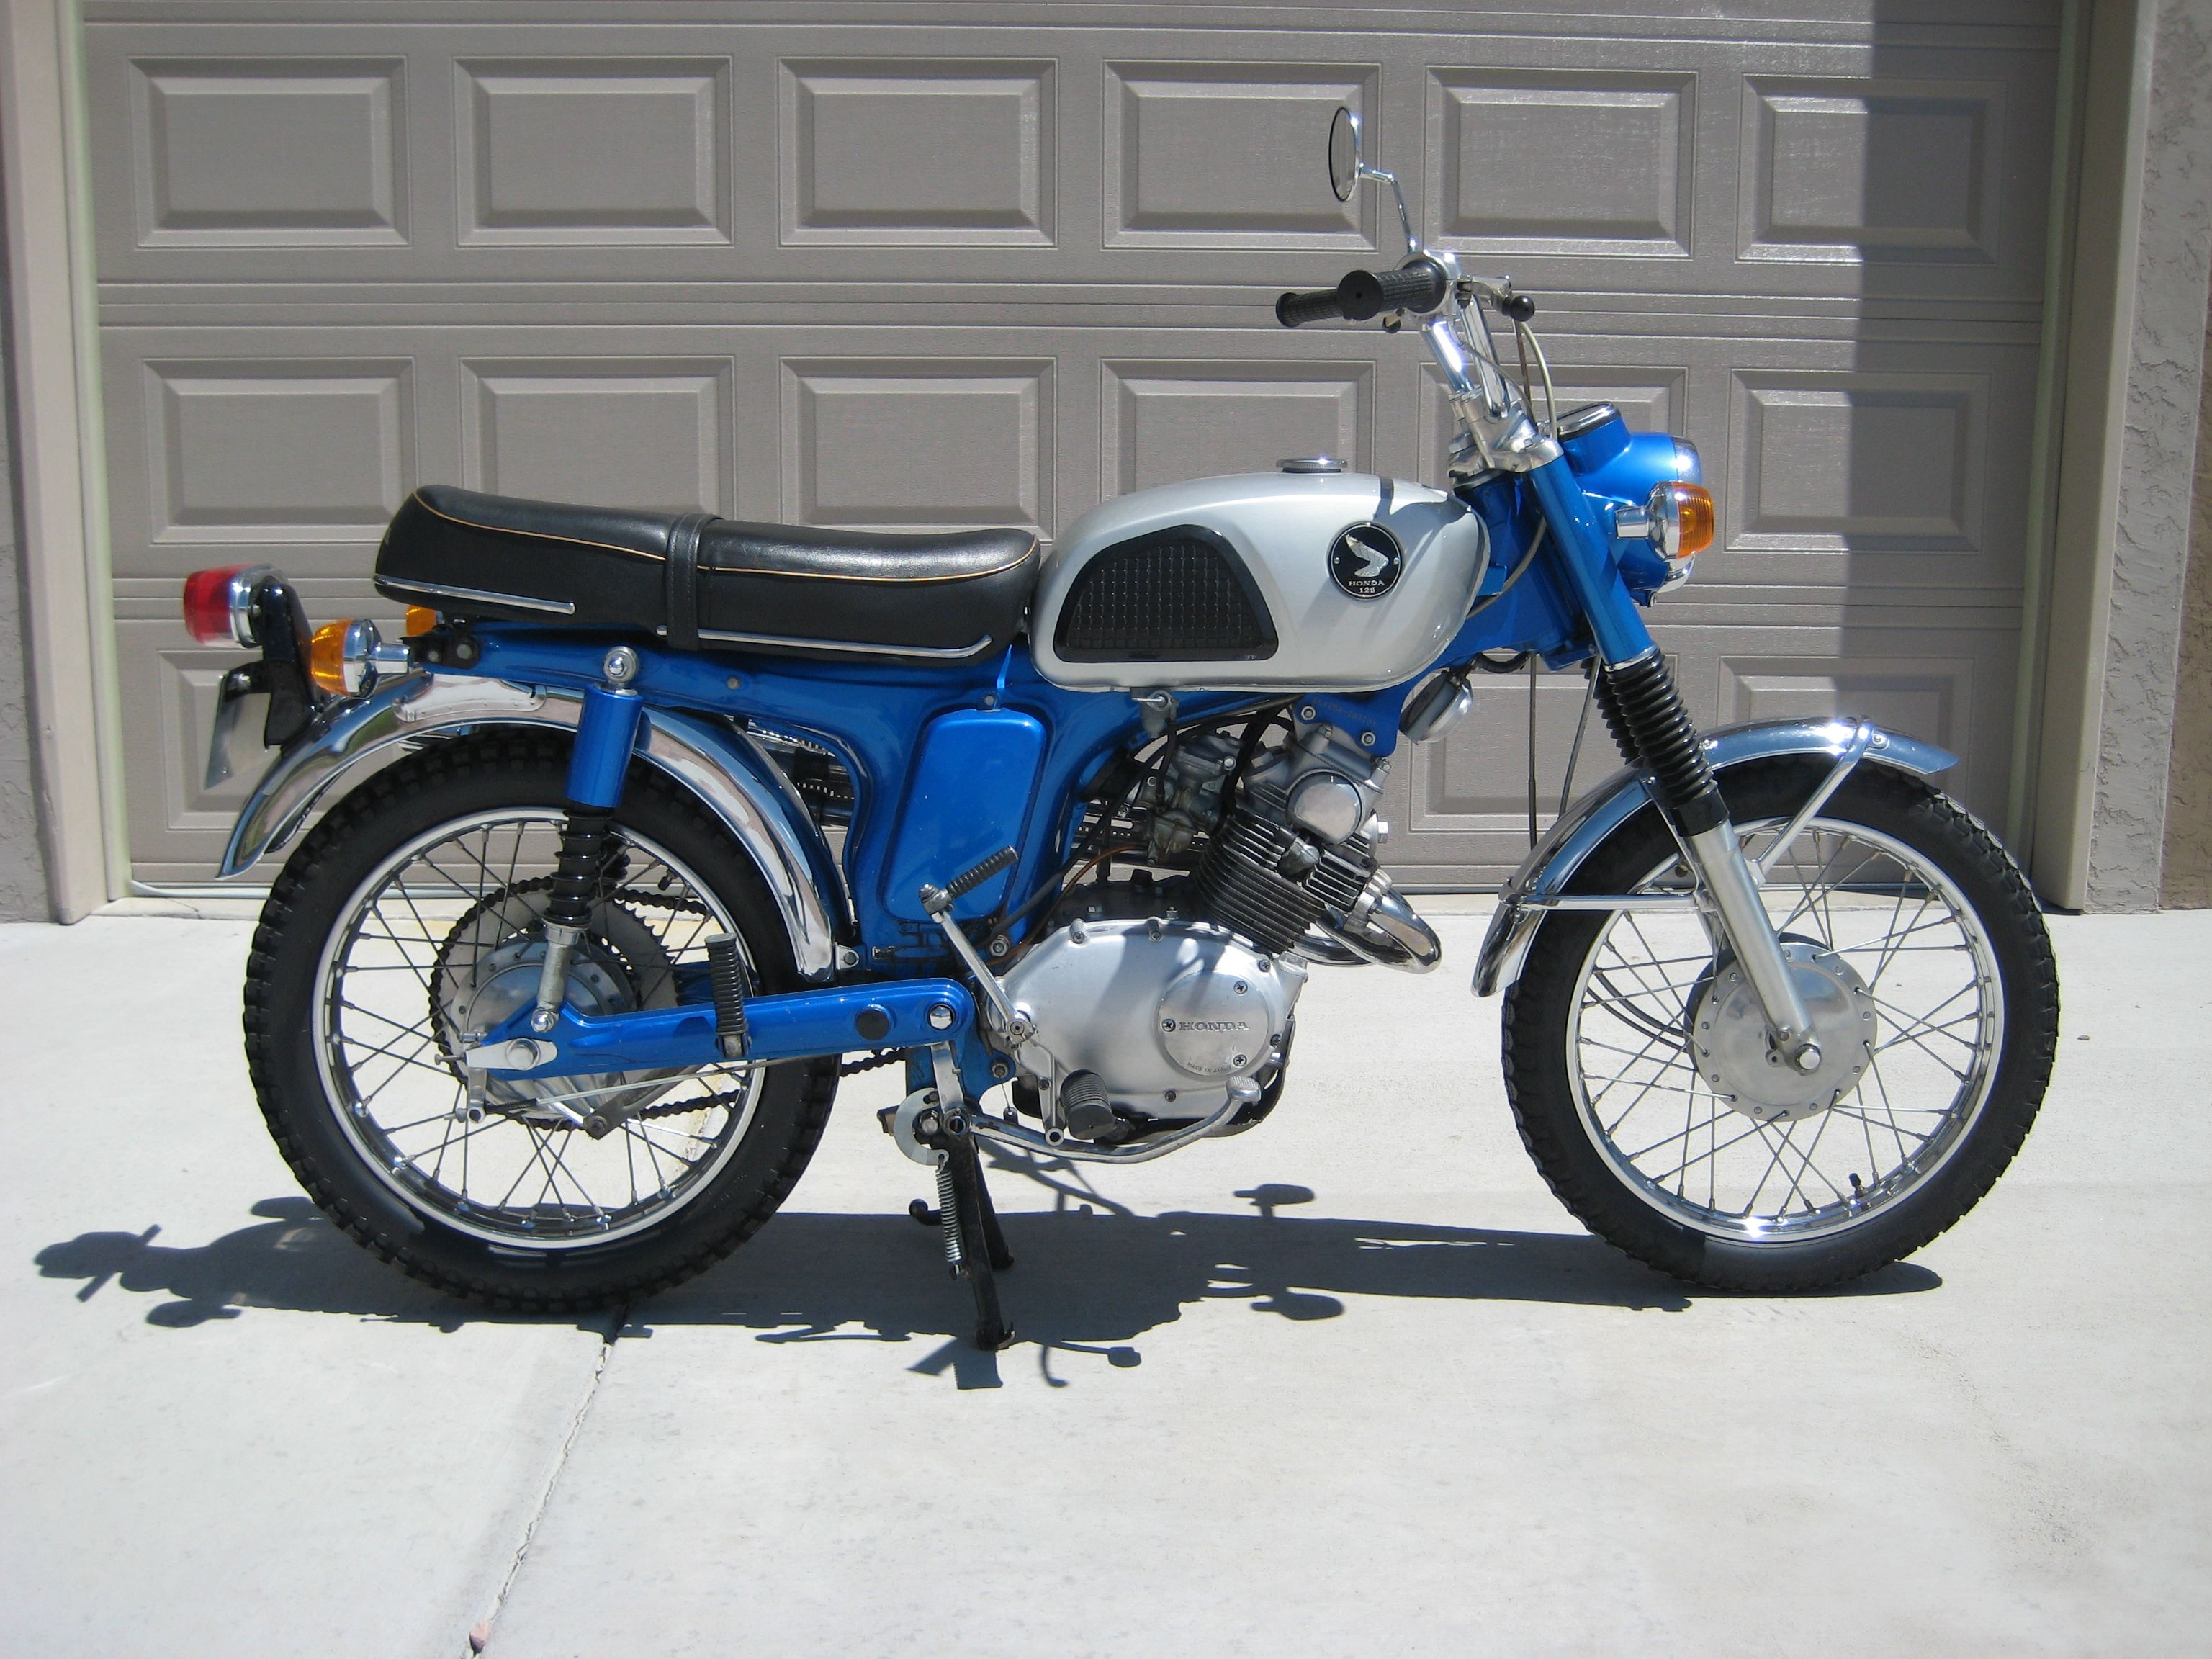 1968 Honda Cl125a 125cc Twin With 4spd Transmission Cafe Racer Honda Honda Bikes Vintage Honda Motorcycles